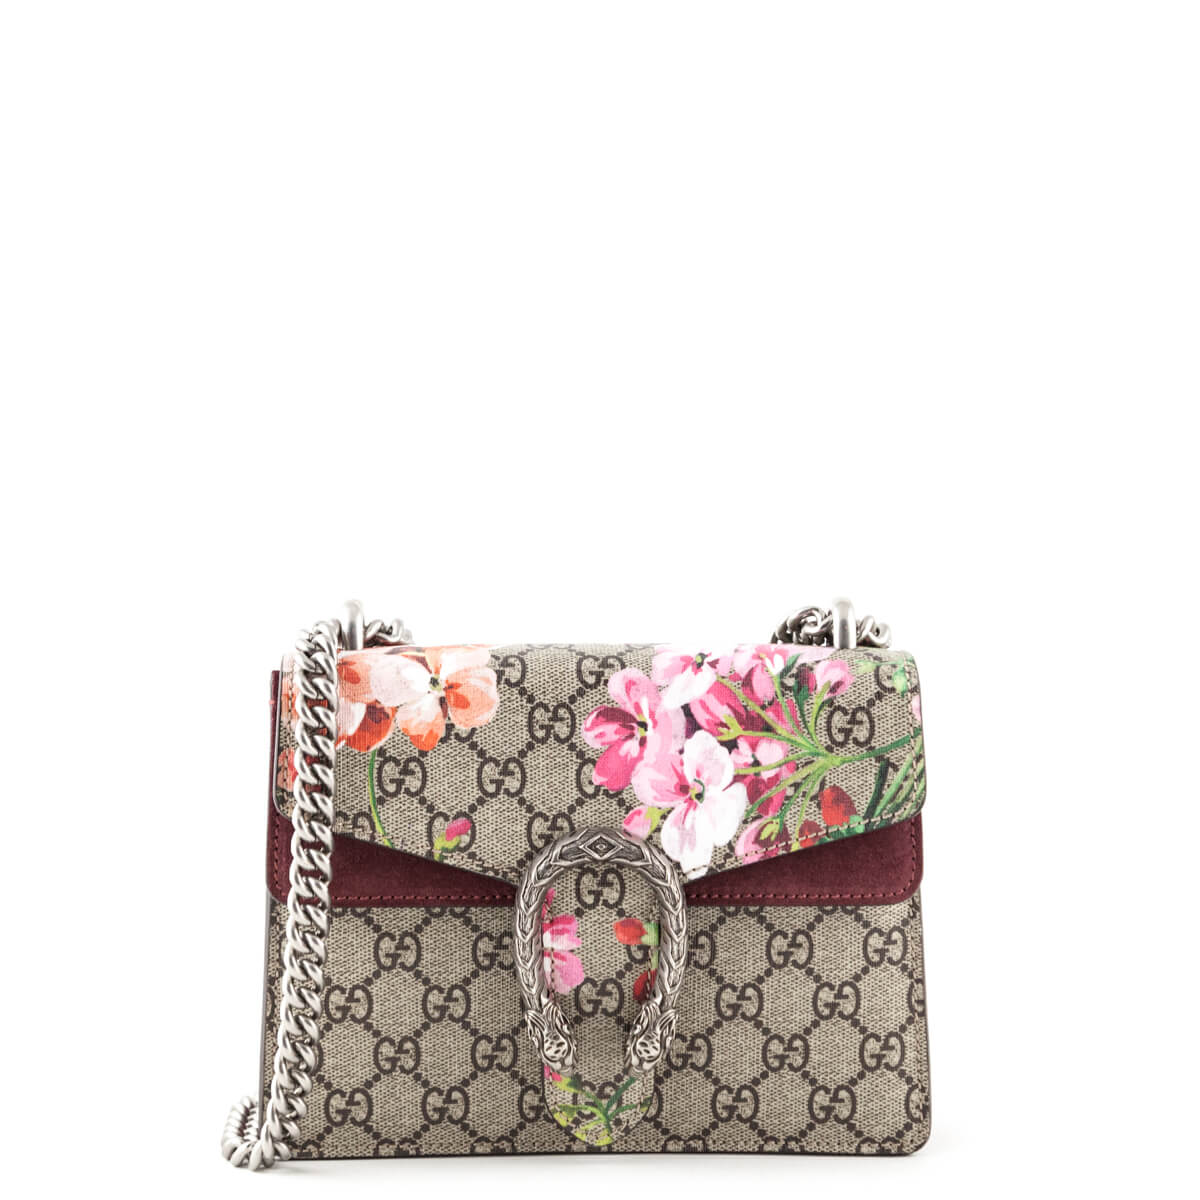 7e7517ec6076 Gucci Pink Suede and Canvas GG Blooms Mini Dionysus - LOVE that BAG -  Preowned Authentic ...